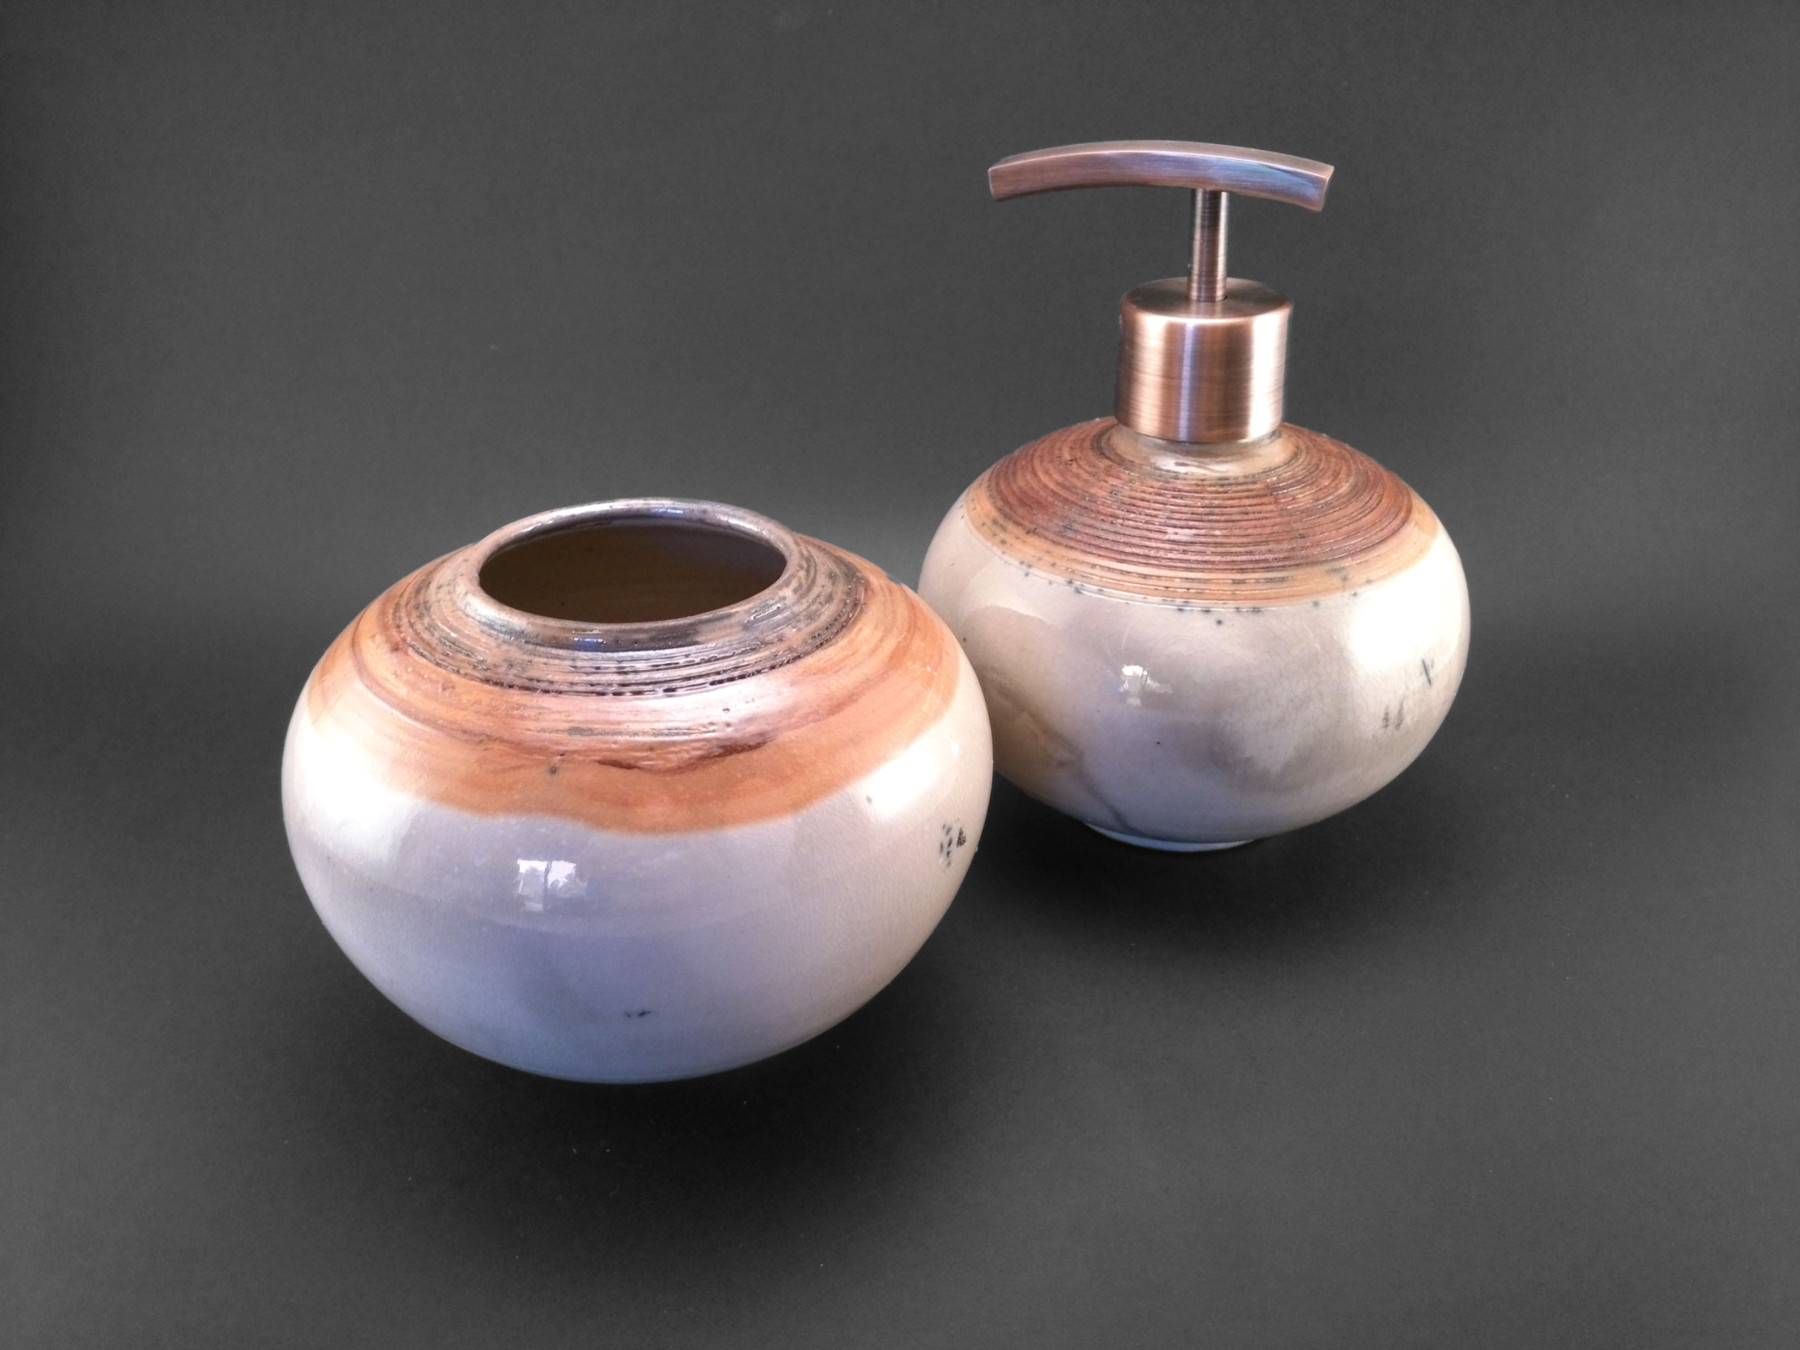 Copper Bathroom Set - Ildikó Károlyi